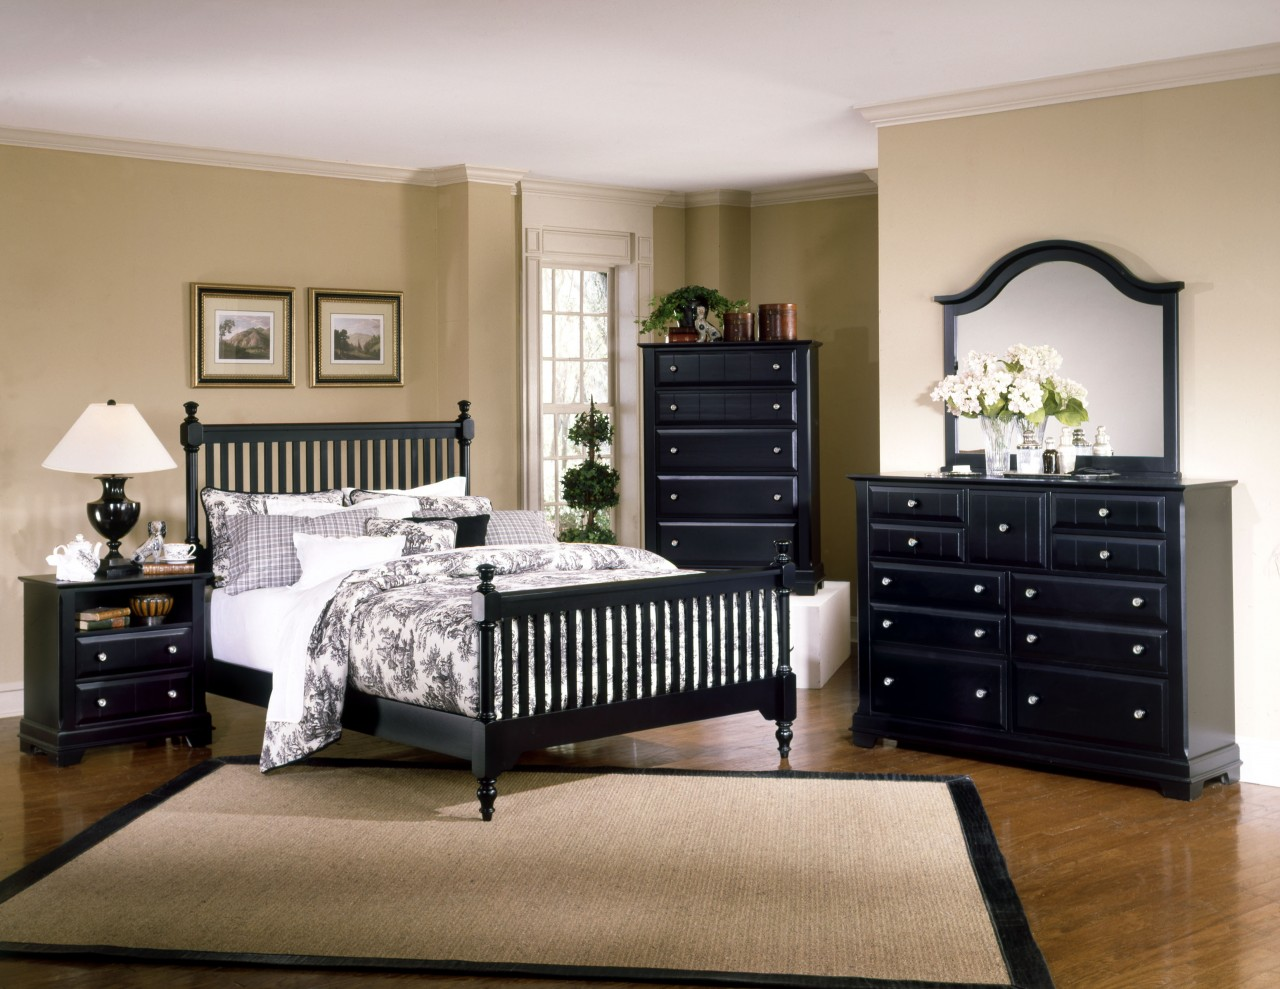 black furniture black bedroom ideas furniture paint WJWCPNH